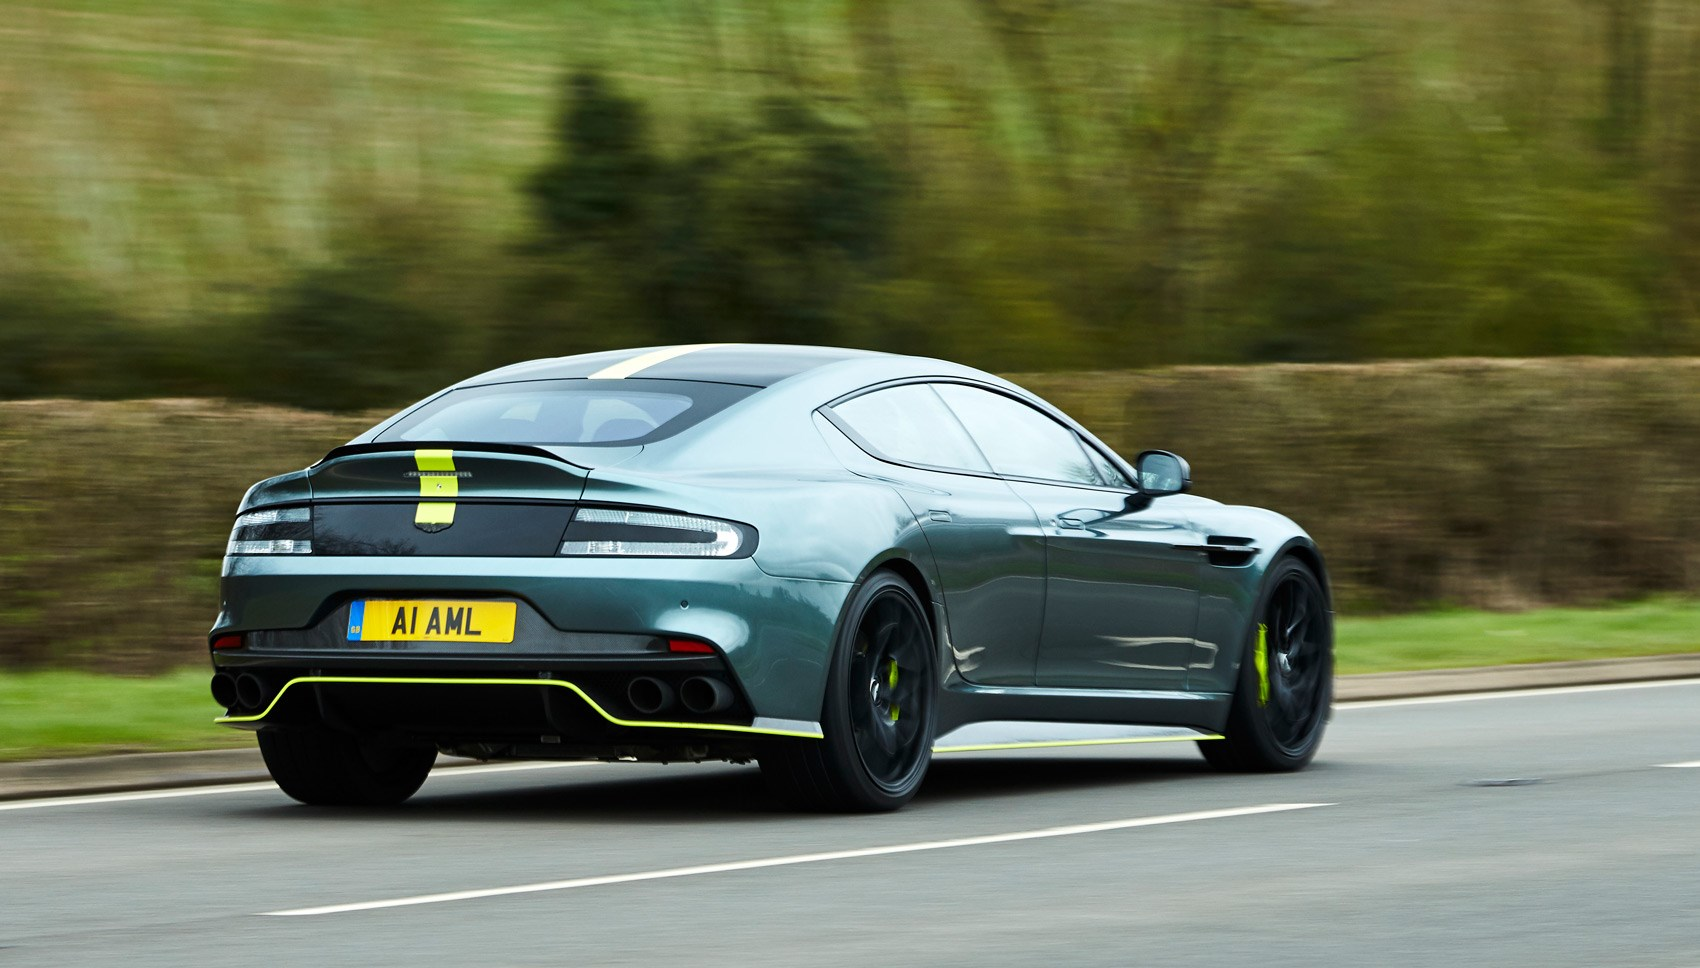 Aston Martin Rapide AMR (2019) Review: The Fat Lady Sings